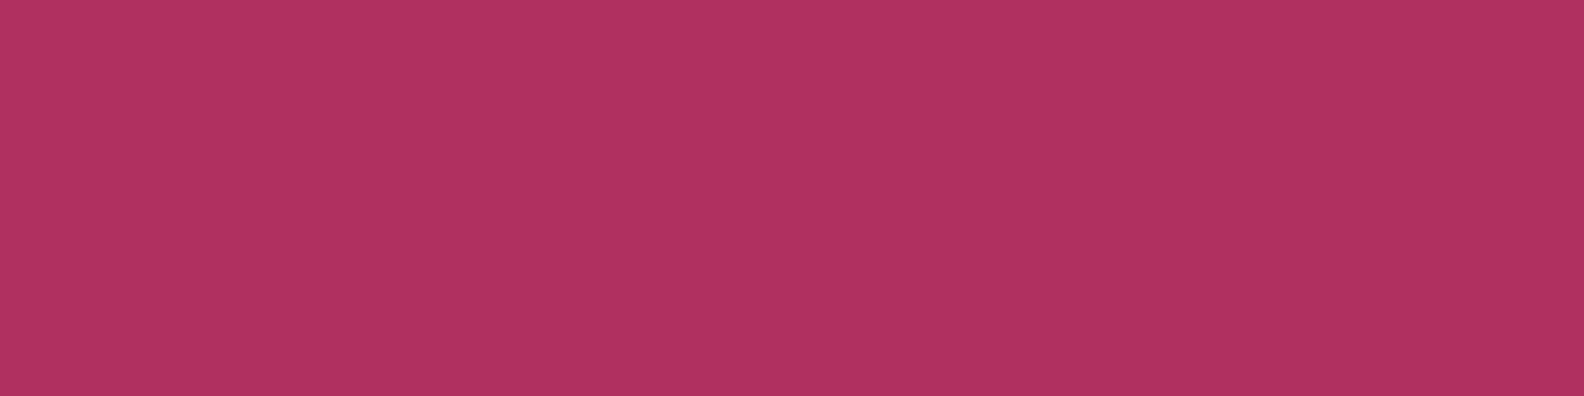 1584x396 Rich Maroon Solid Color Background